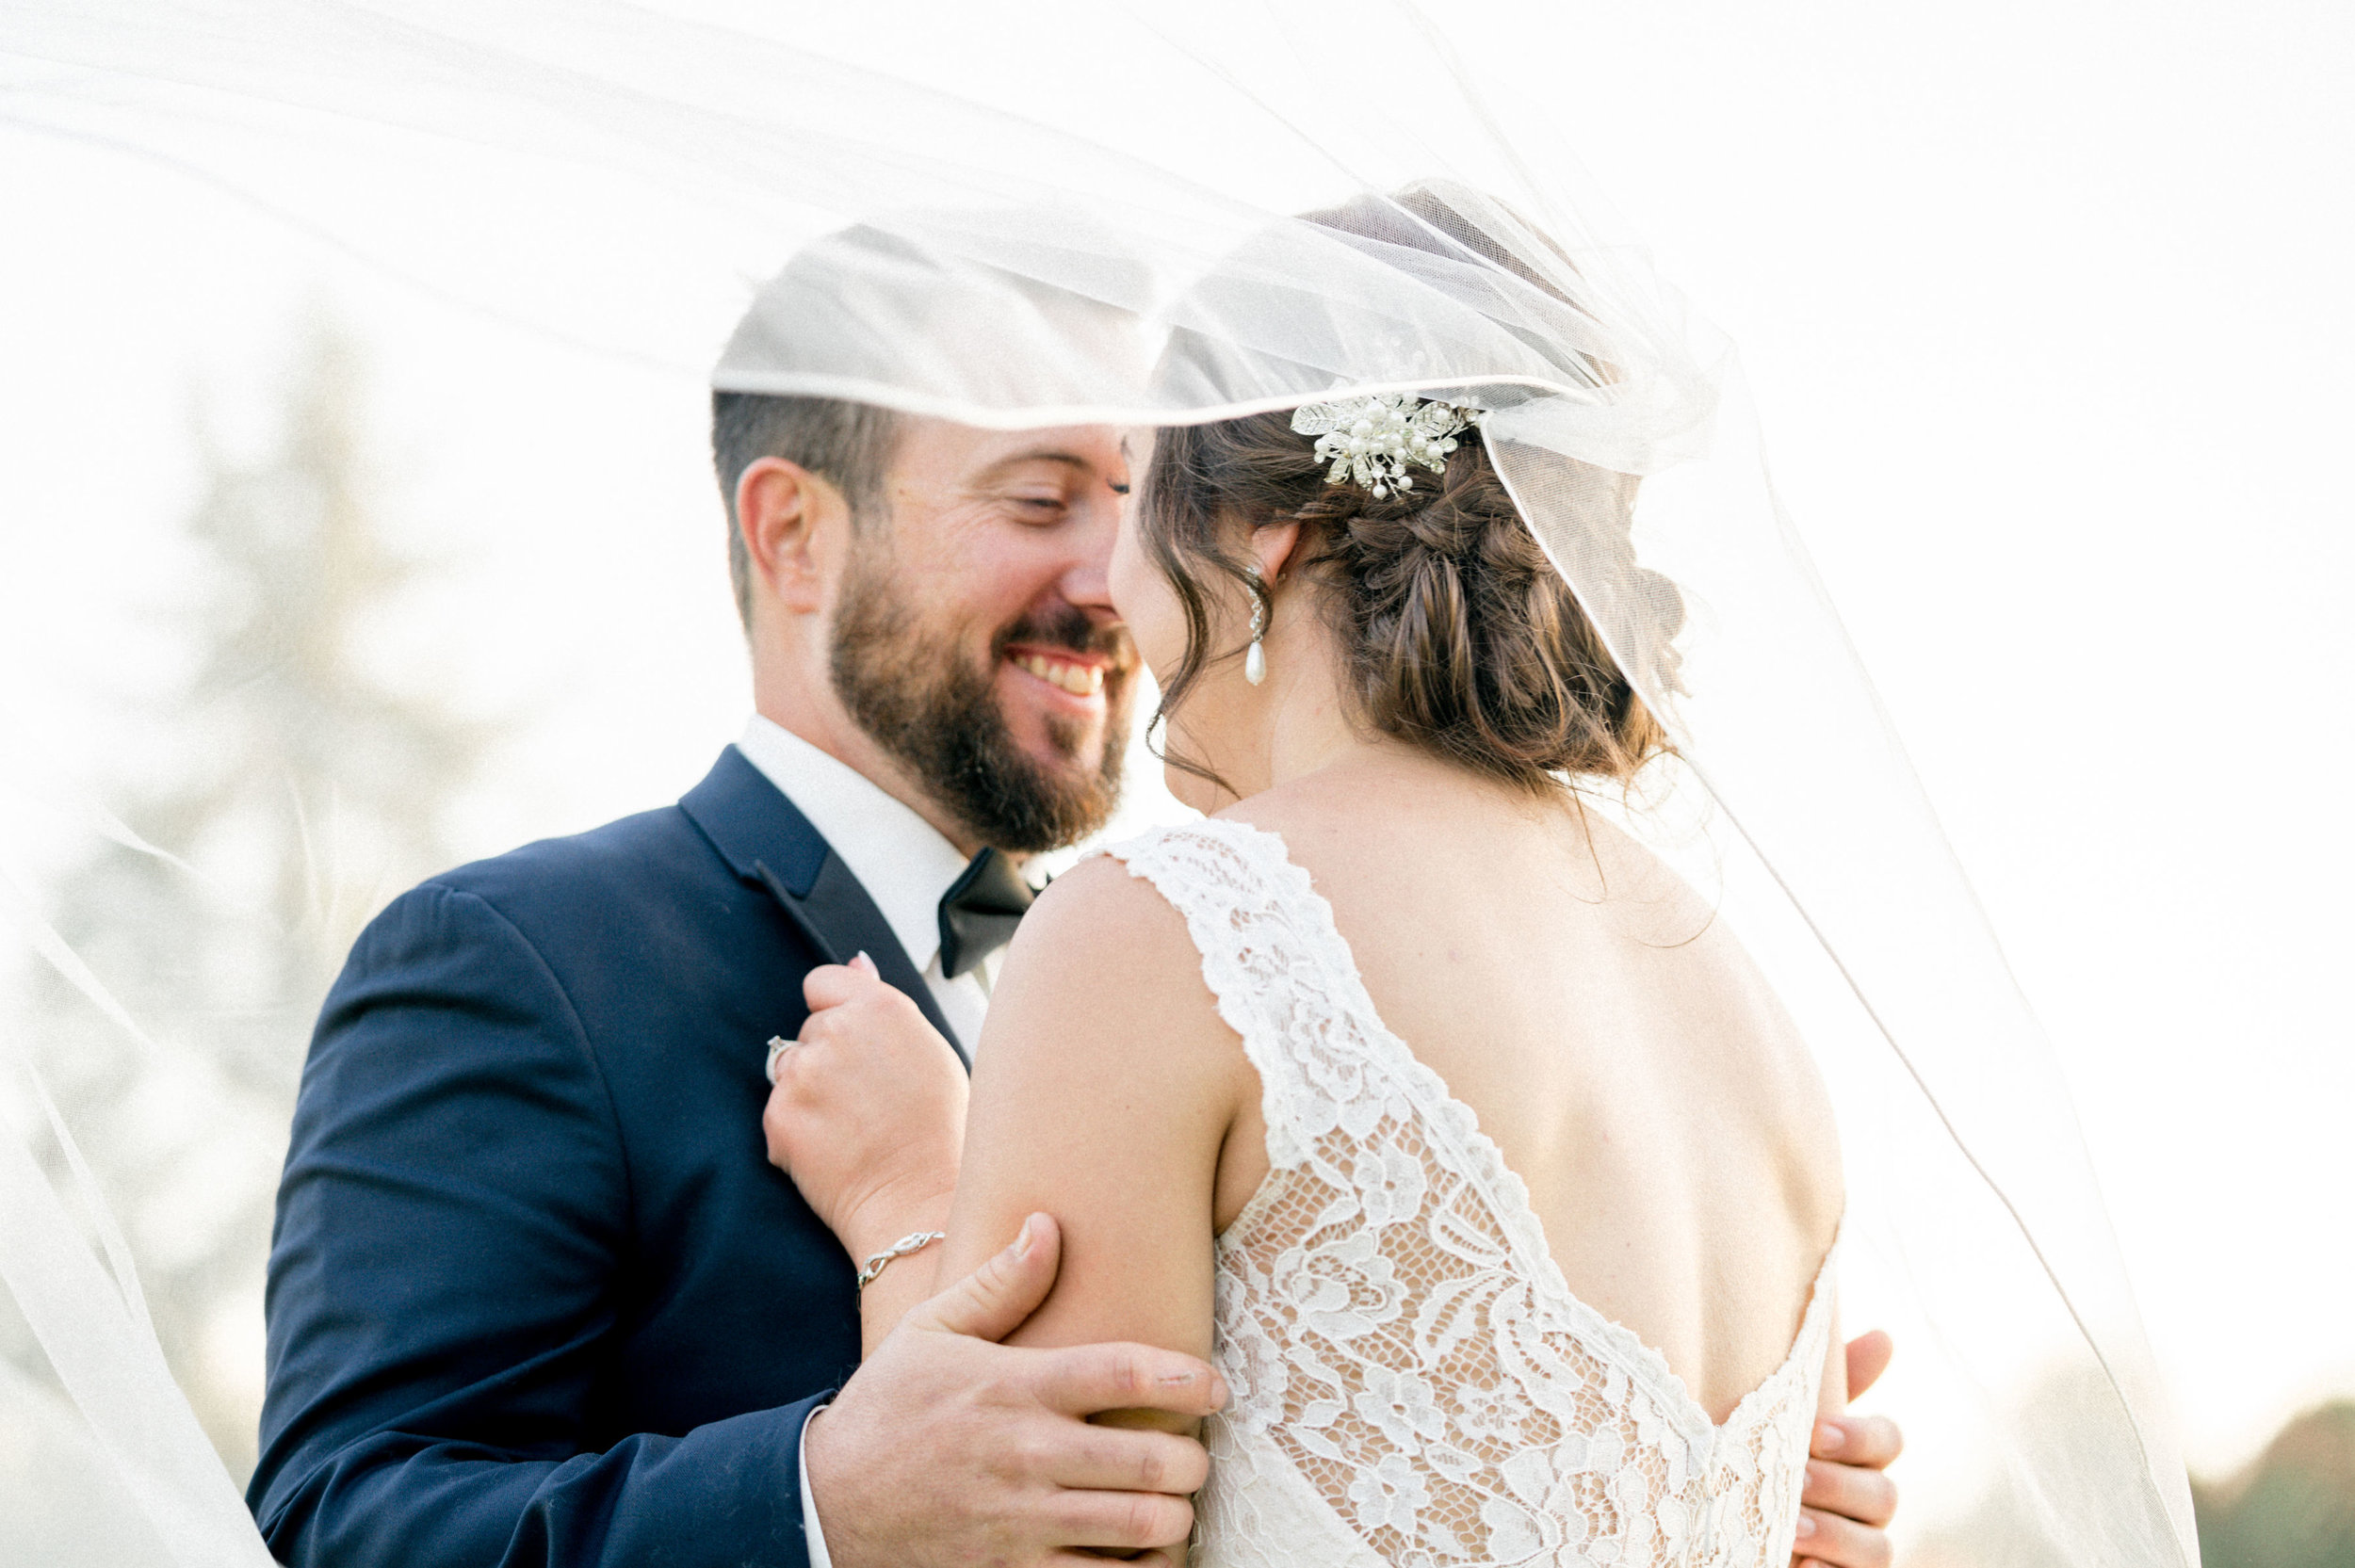 Courtney & Kevin Hicks - Married October 13th, 2018The Hideaway